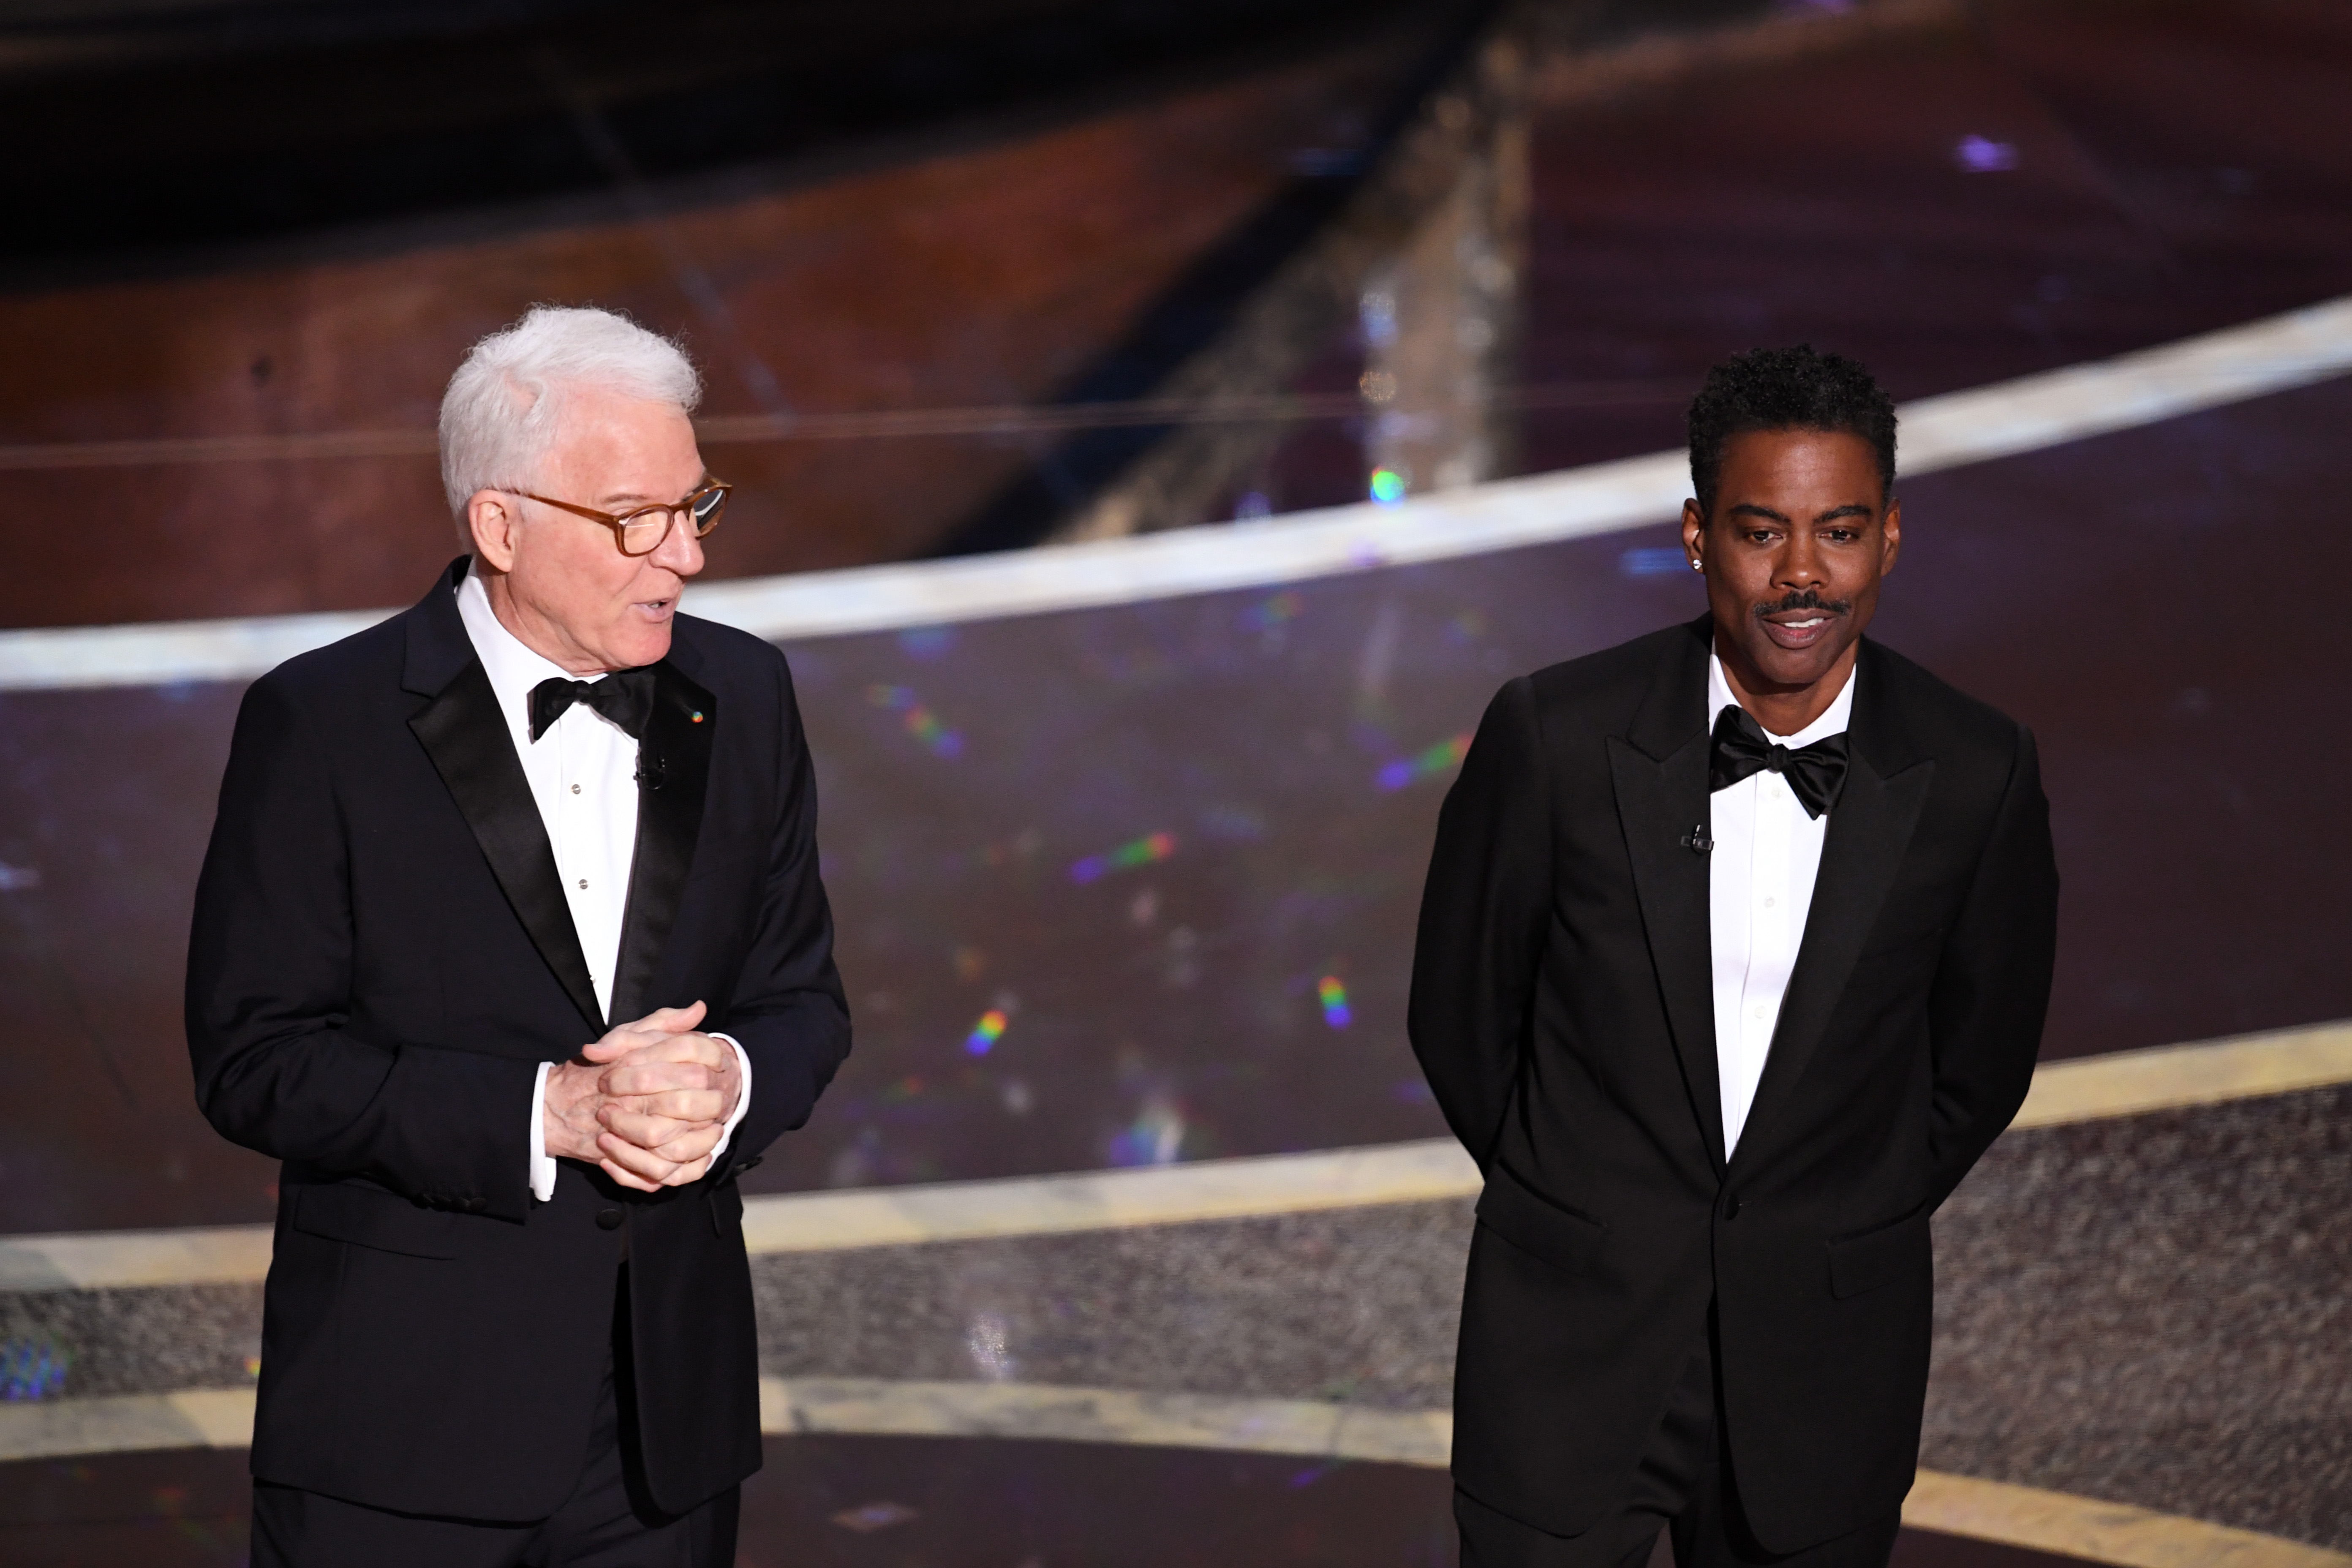 Steve Martin and Chris Rock speak onstage during the 92nd Annual Academy Awards at Dolby Theatre on Feb. 9, 2020 in Hollywood, California.